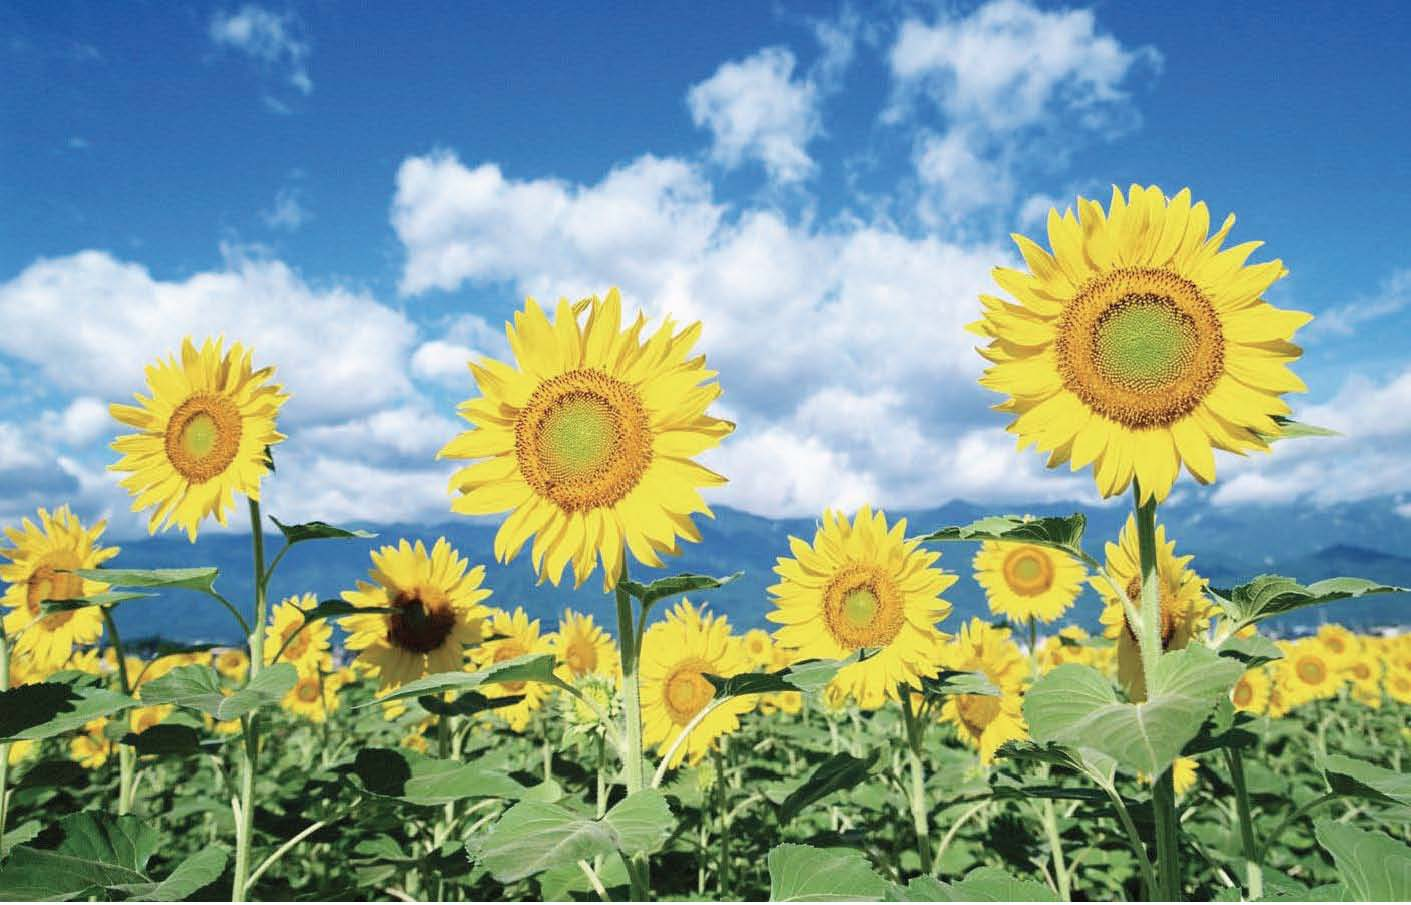 pix of sunflowers